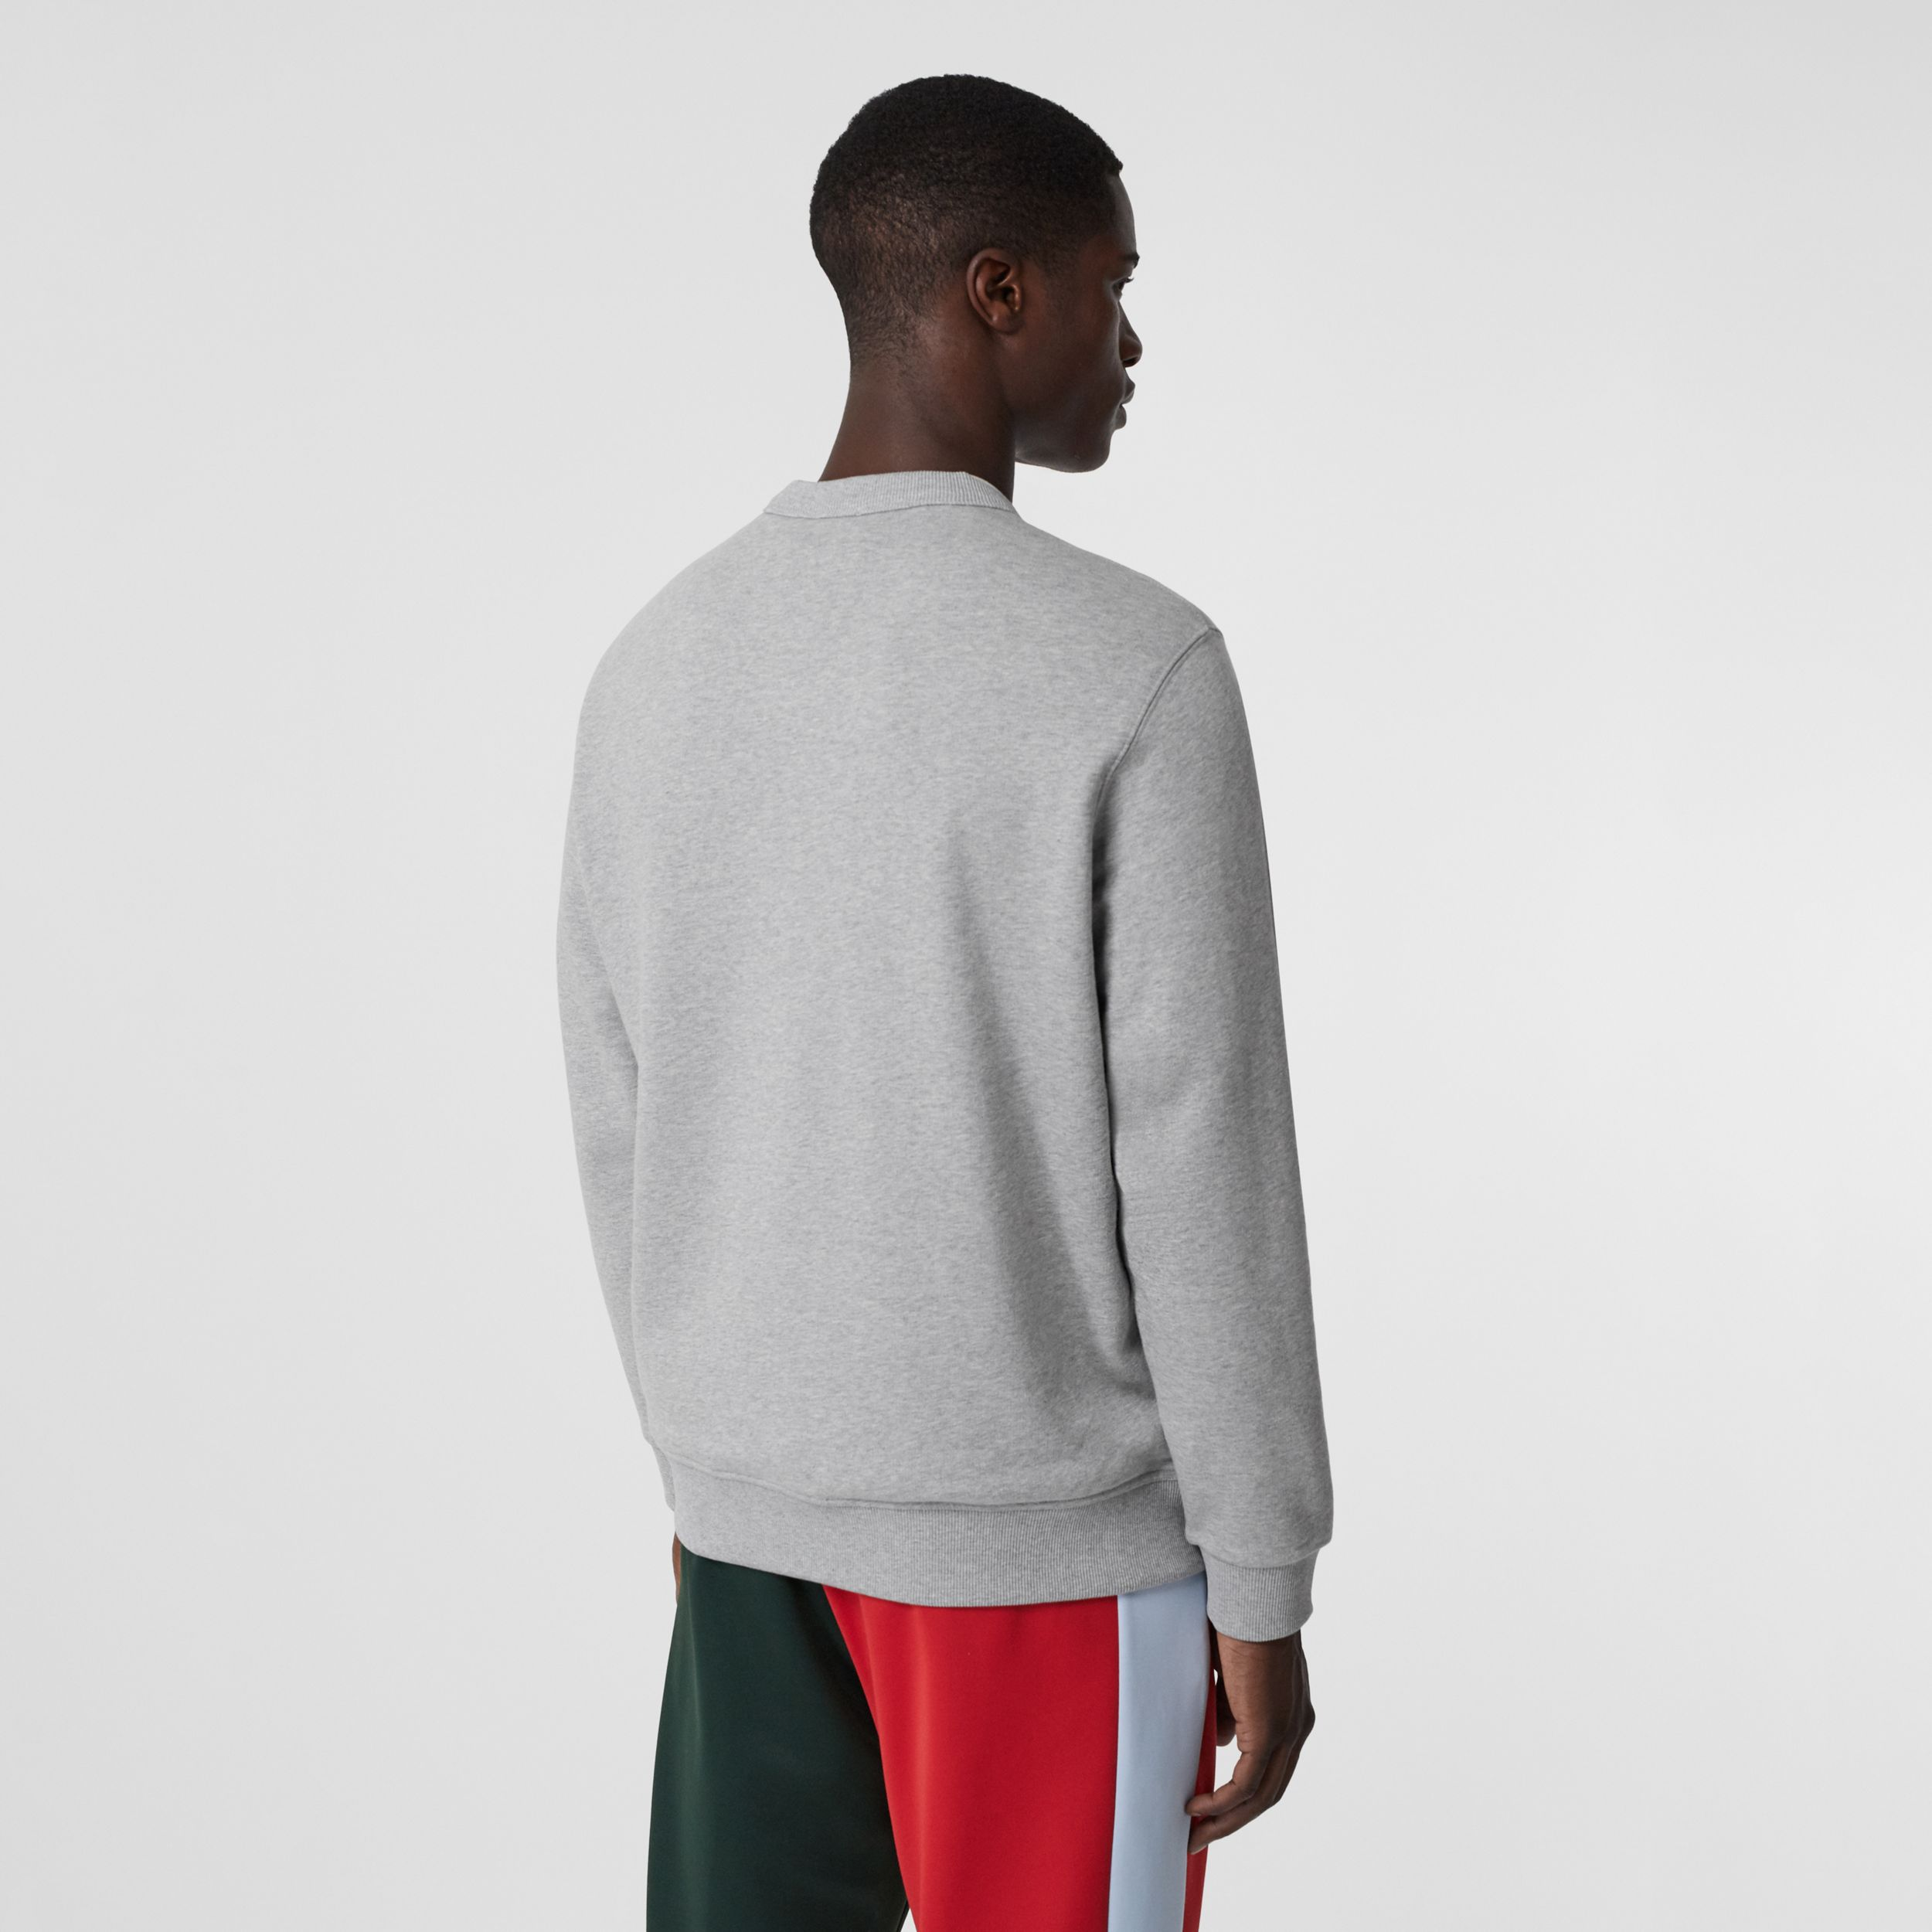 Logo Appliqué Cotton Sweatshirt in Pale Grey Melange - Men | Burberry - 3